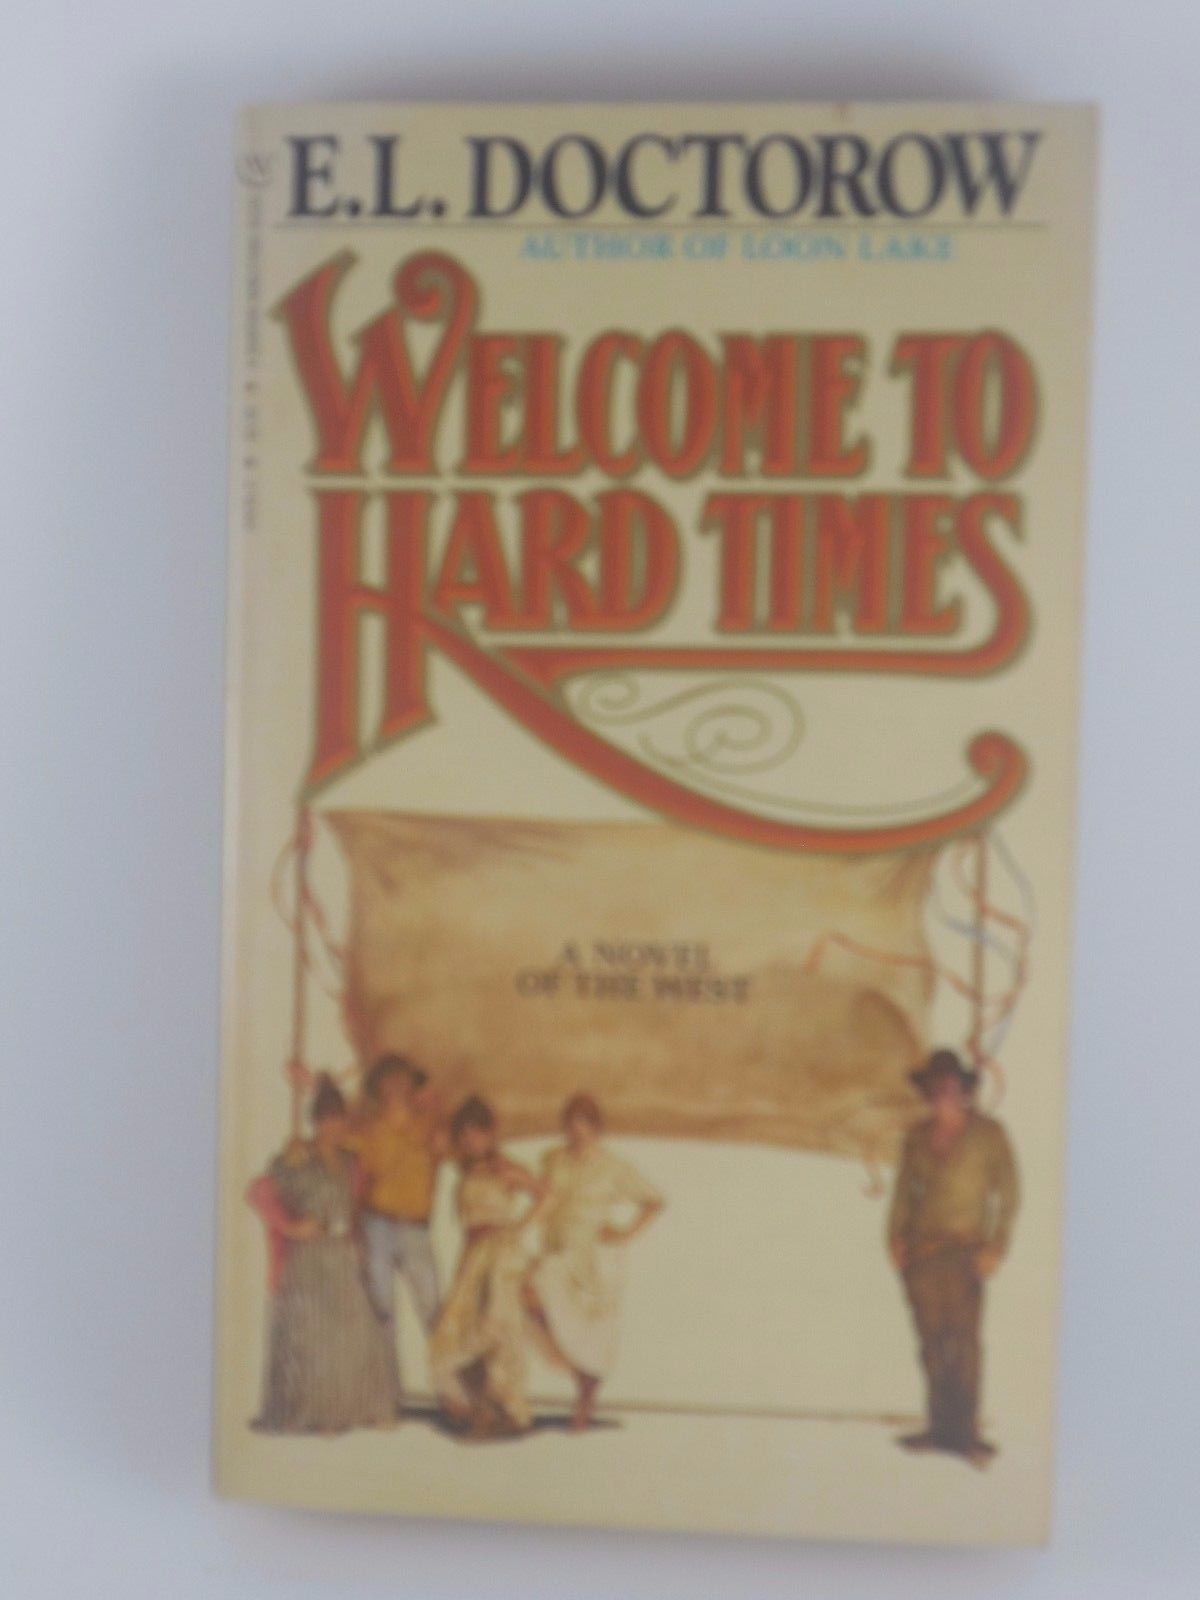 doctorow s welcome to hard times Buy welcome to hard times by e l doctorow from amazon's fiction books store everyday low prices on a huge range of new releases and classic fiction.